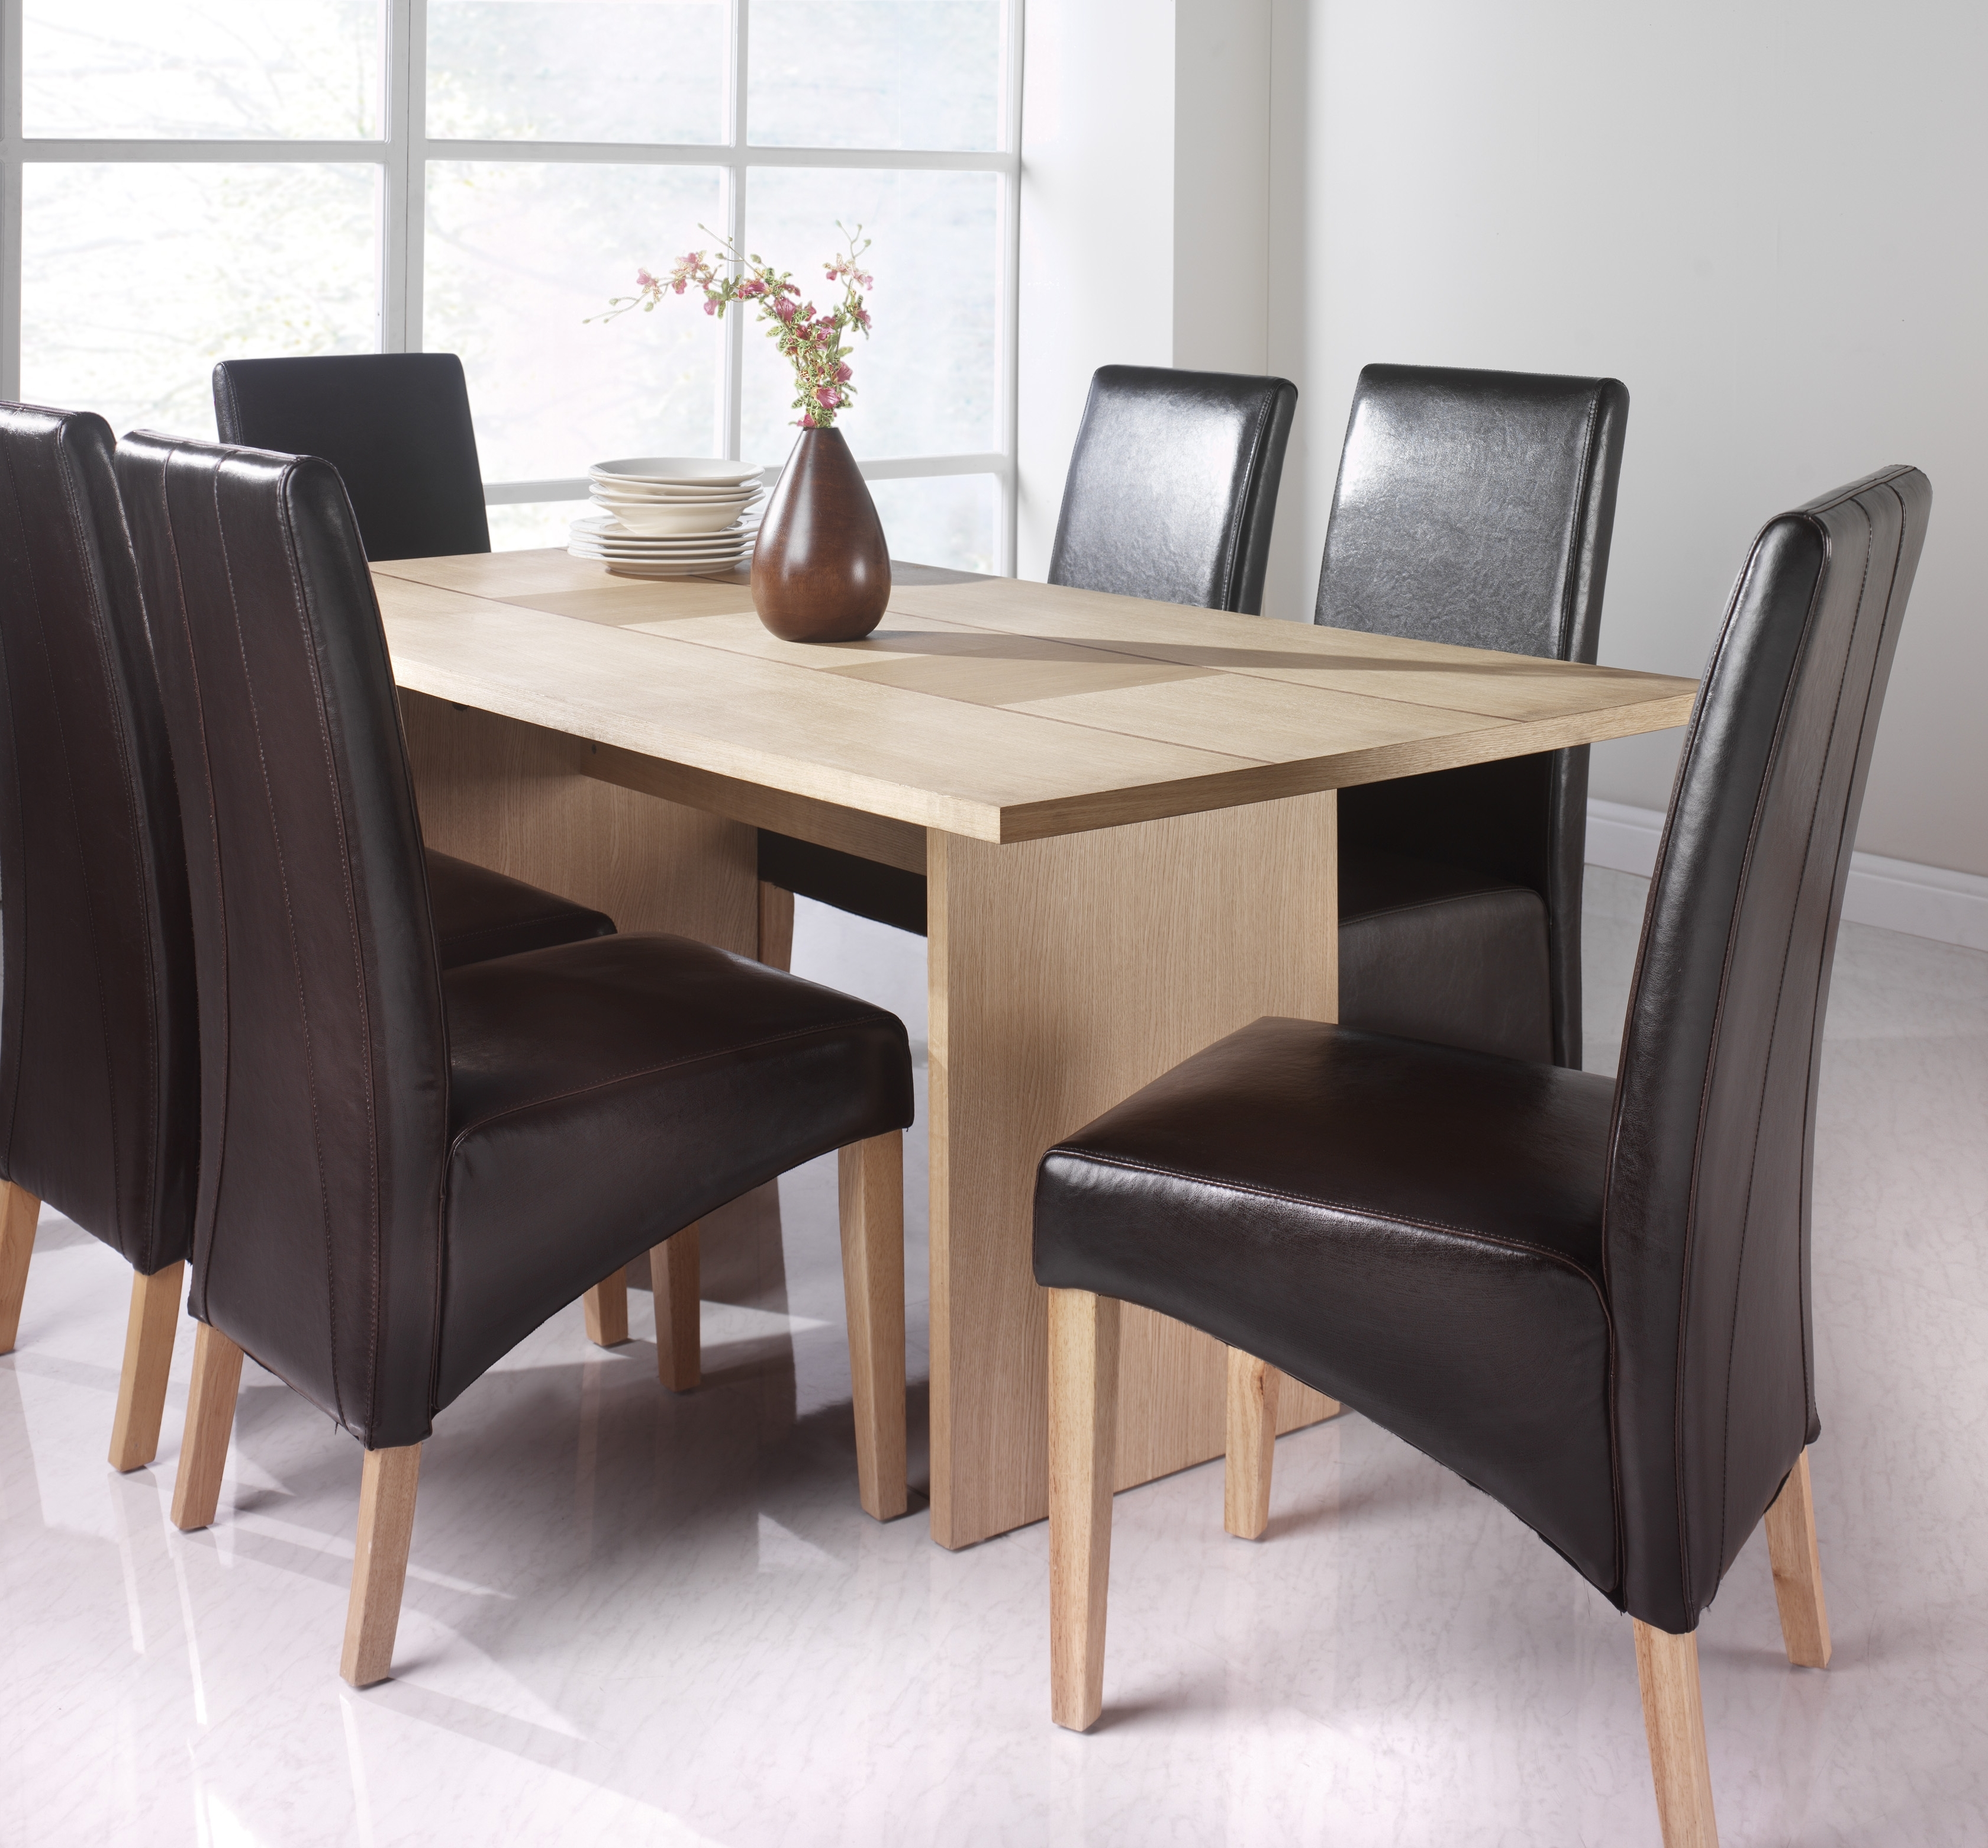 Dining Tables At Aintree Liquidation Centre With Regard To Most Up To Date Oak Dining Suites (Gallery 15 of 25)